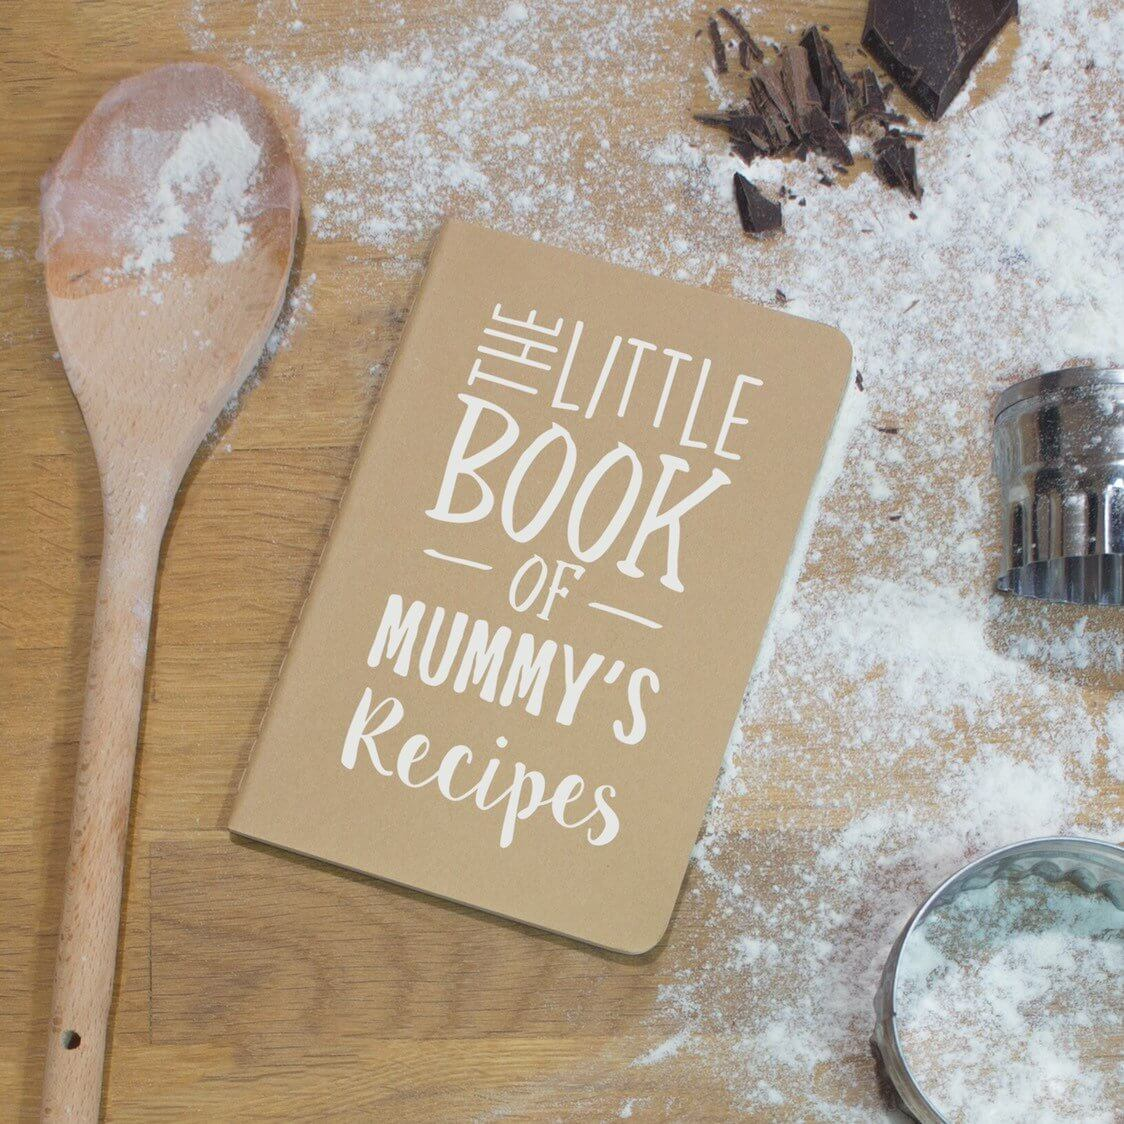 Mother's Day gift, gift idea for mums, mum gift